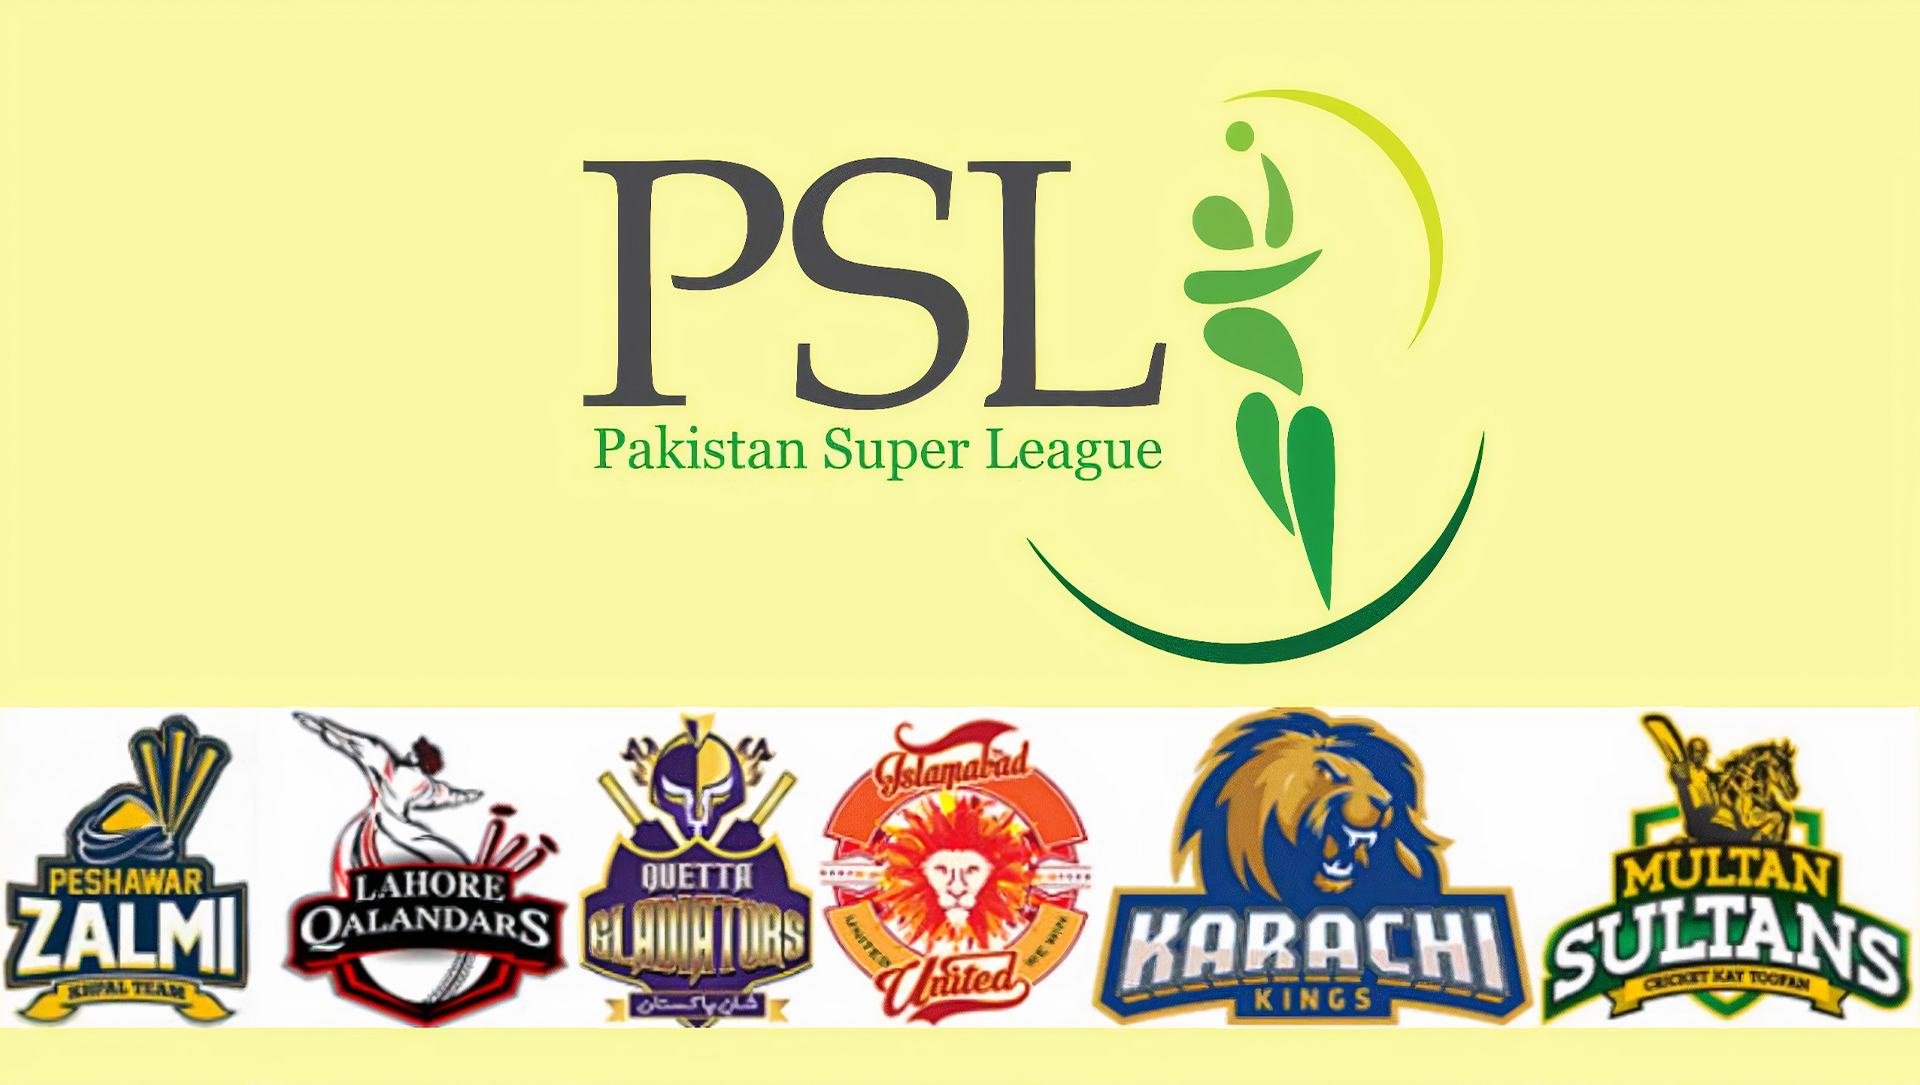 You can place bets on Pakistan Super League (PSL) after registering on the site